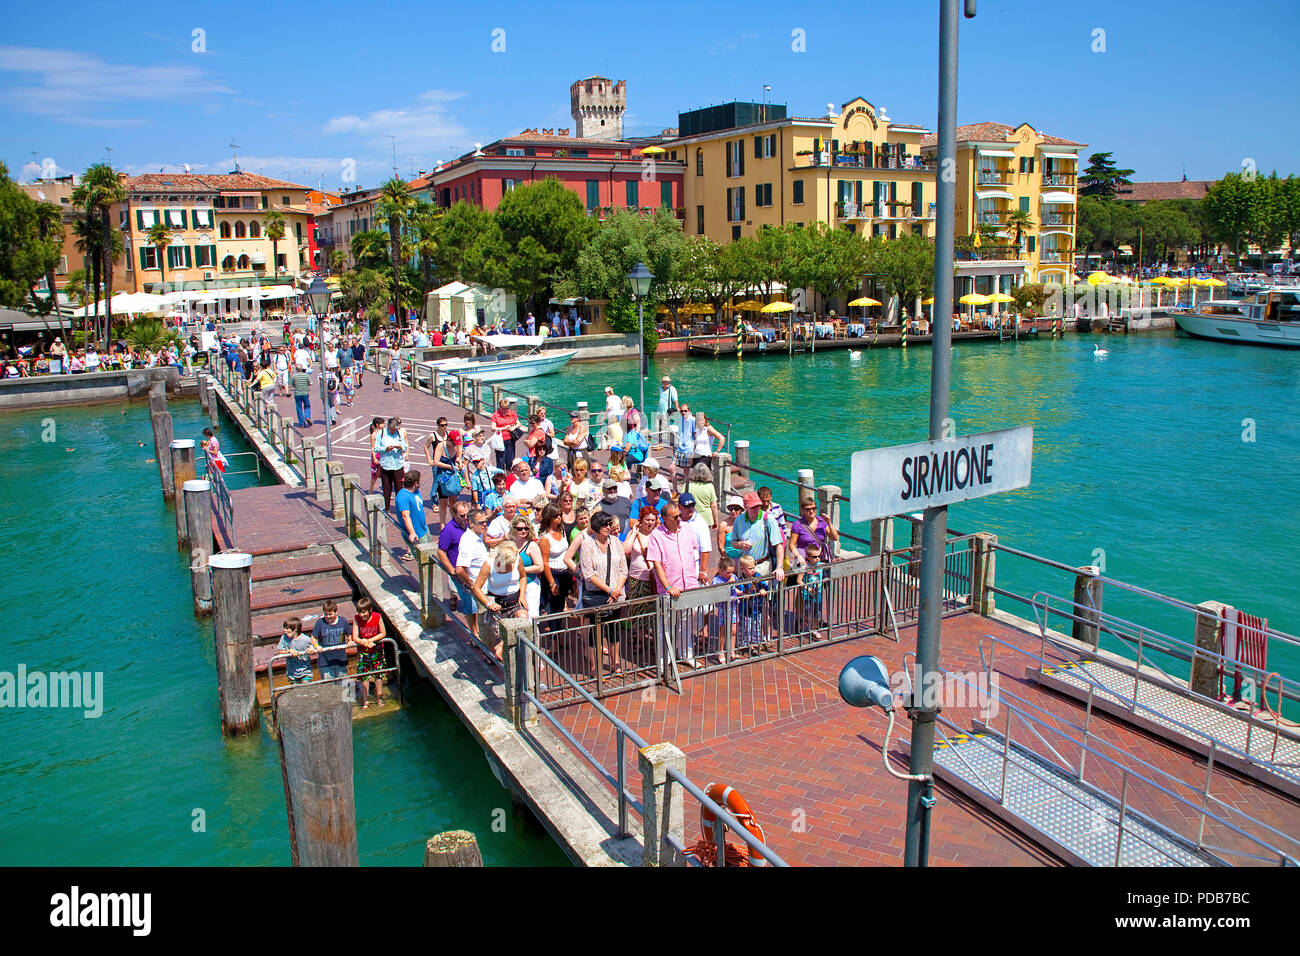 Tourists waiting on pier for the excursion boat, Sirmione, Lake Garda, Lombardy, Italy - Stock Image